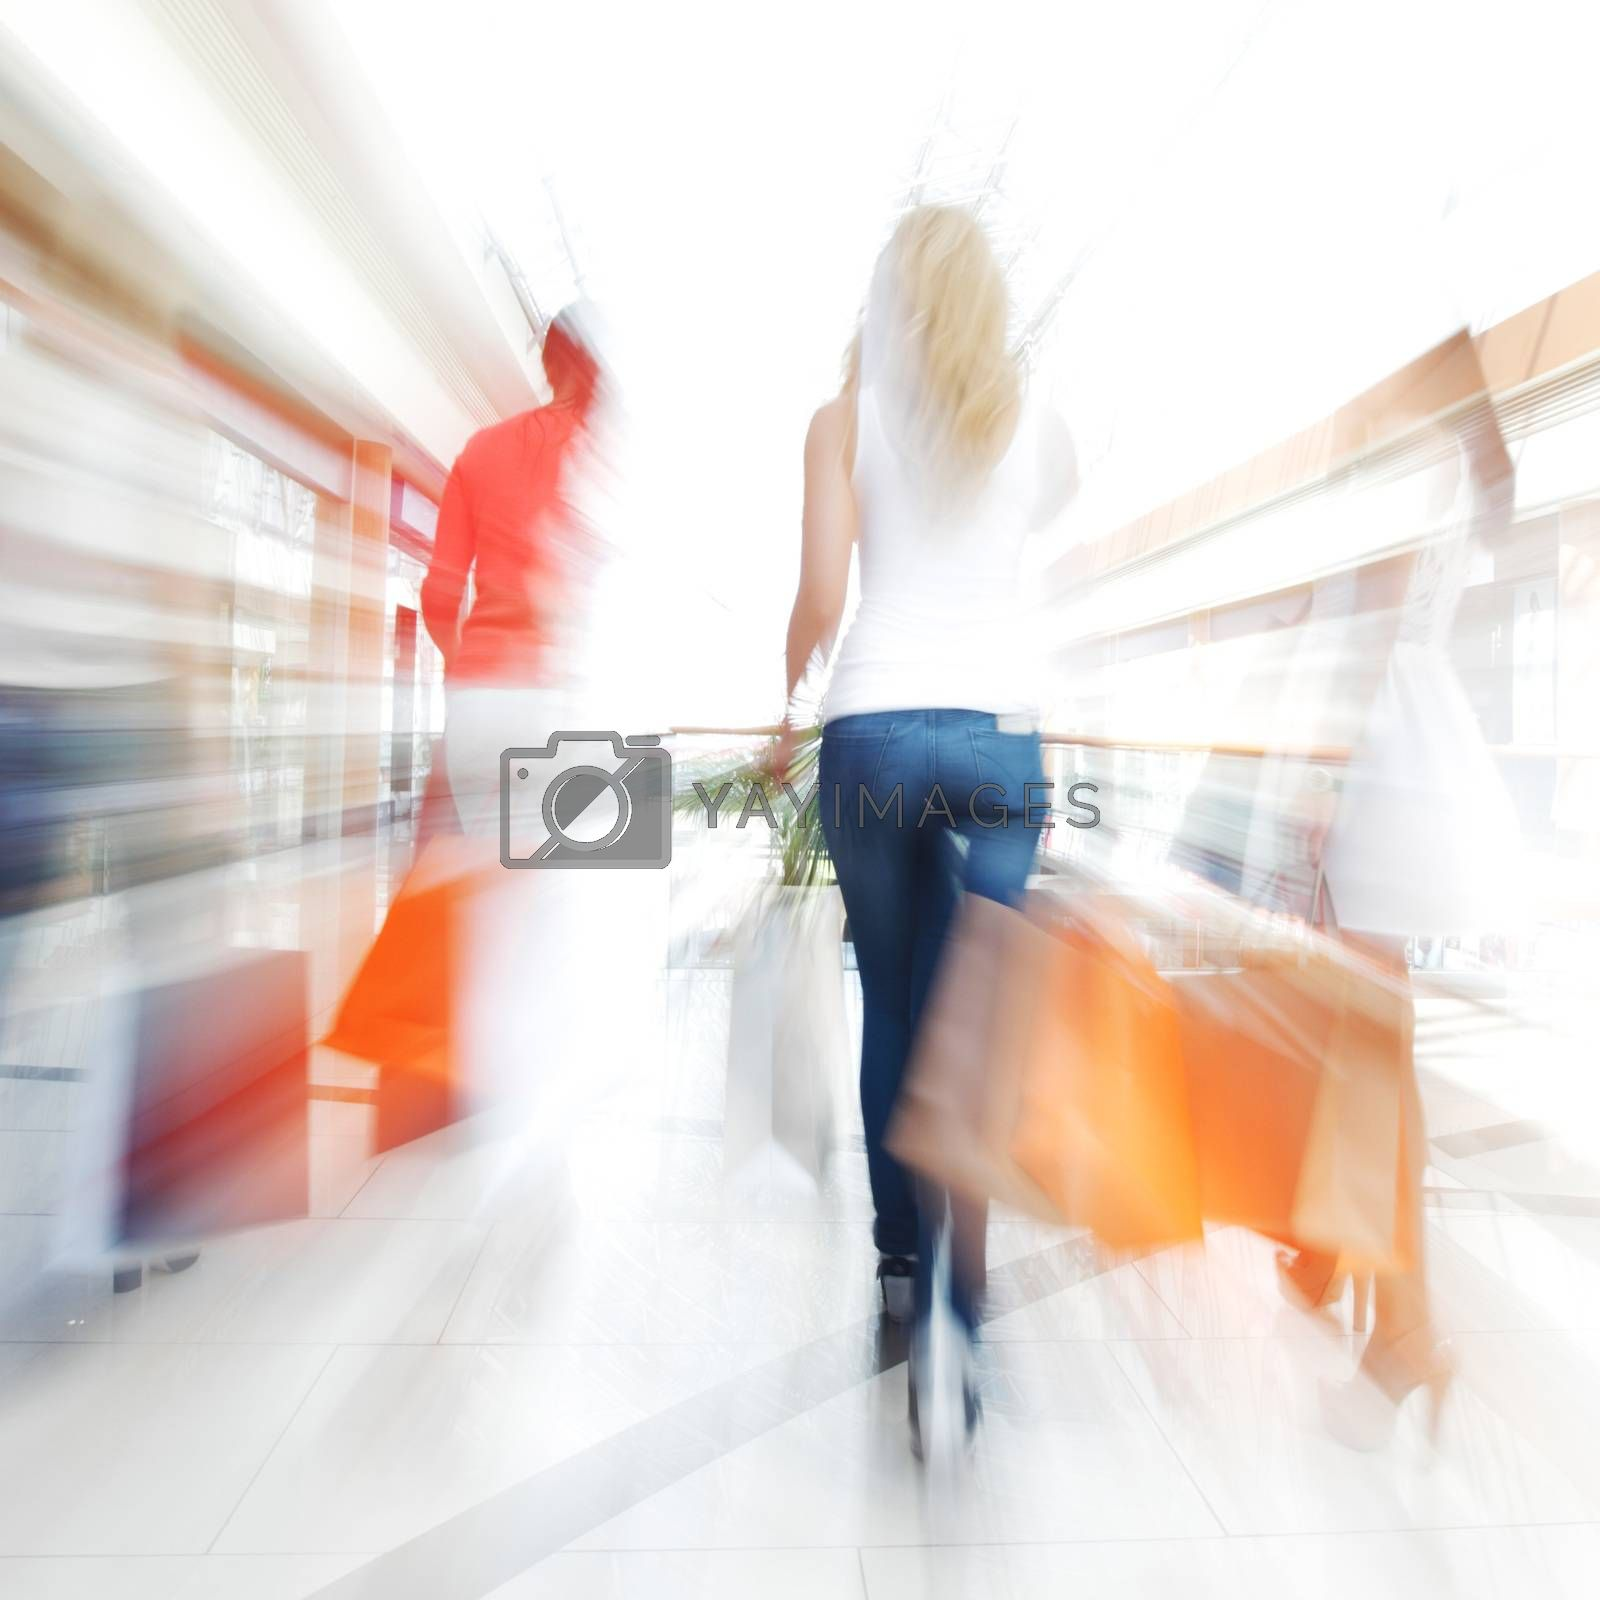 Women walking fast in shopping mall with bags